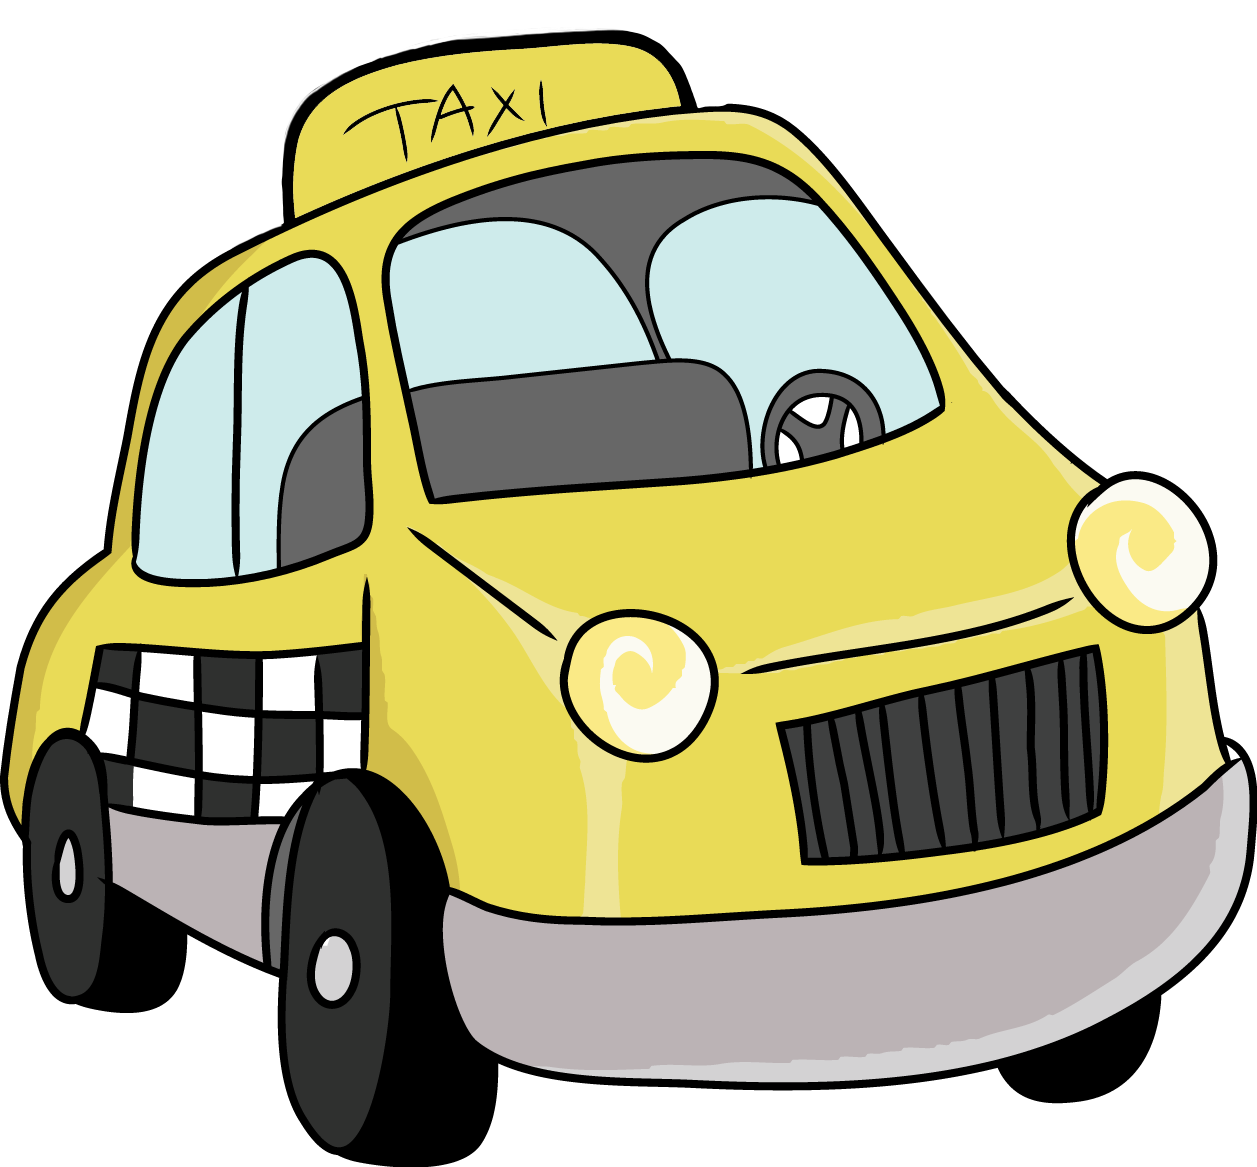 svg black and white stock Man free on dumielauxepices. Taxi clipart